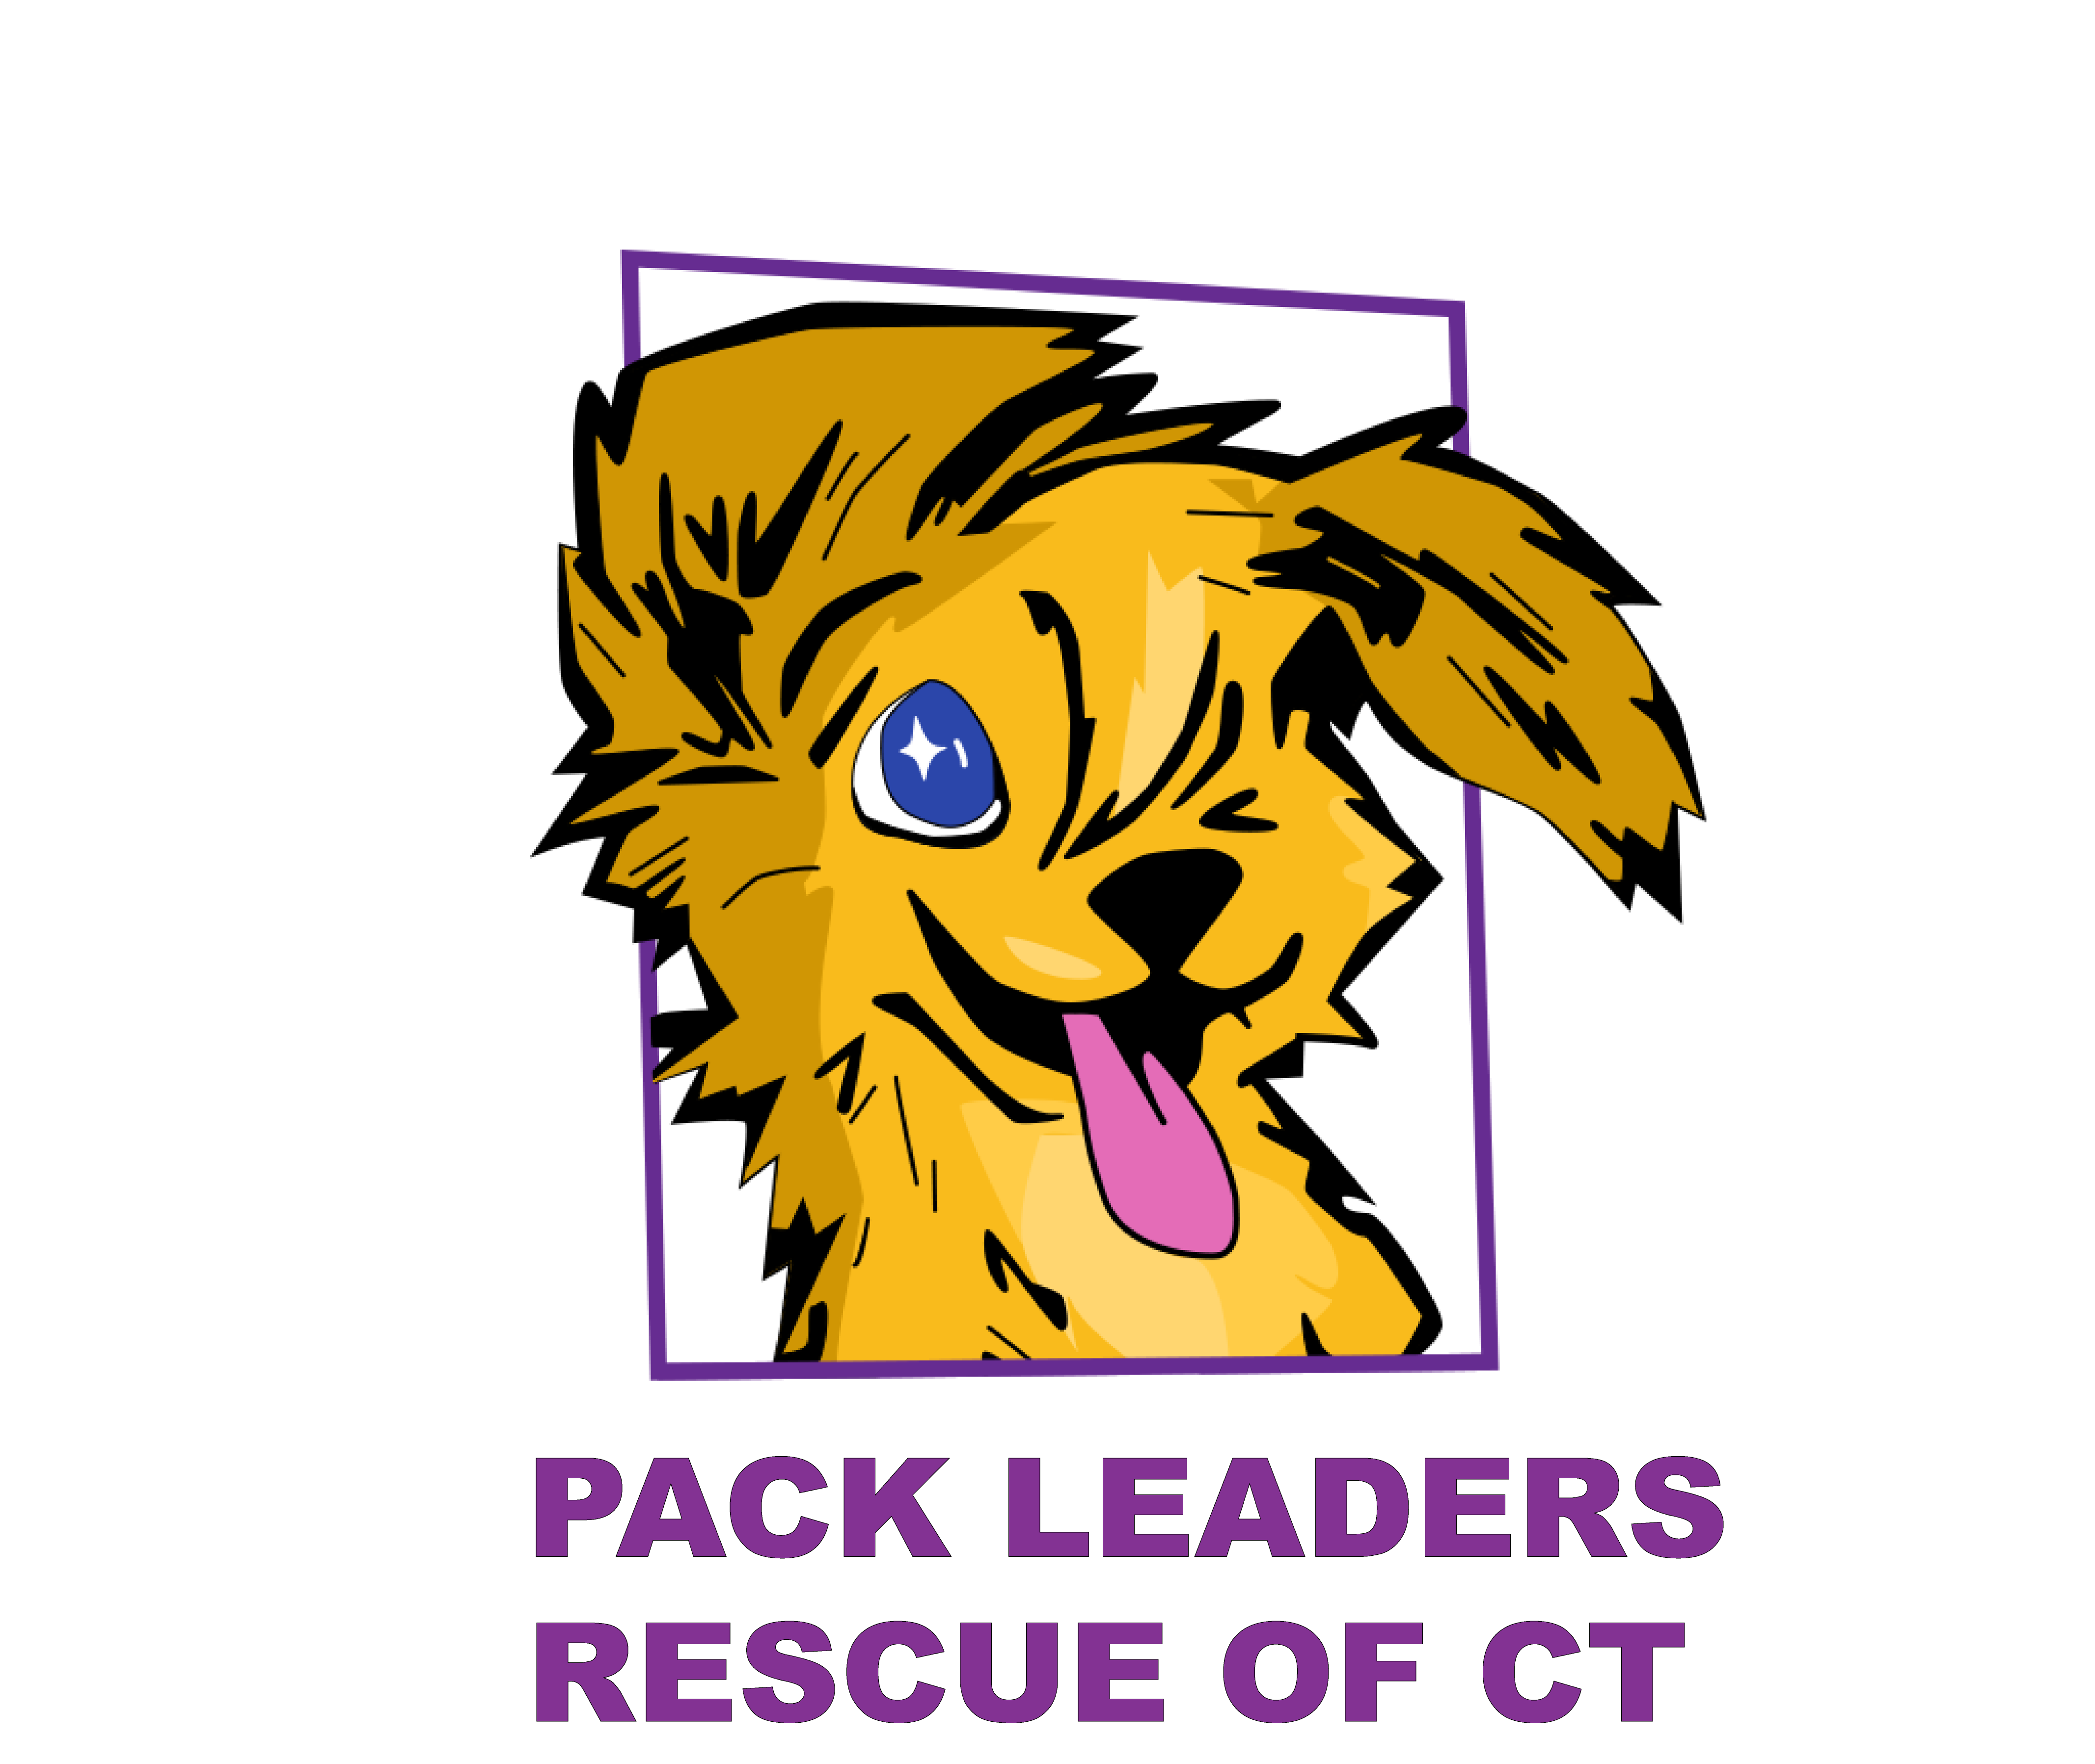 Pack Leaders Rescue